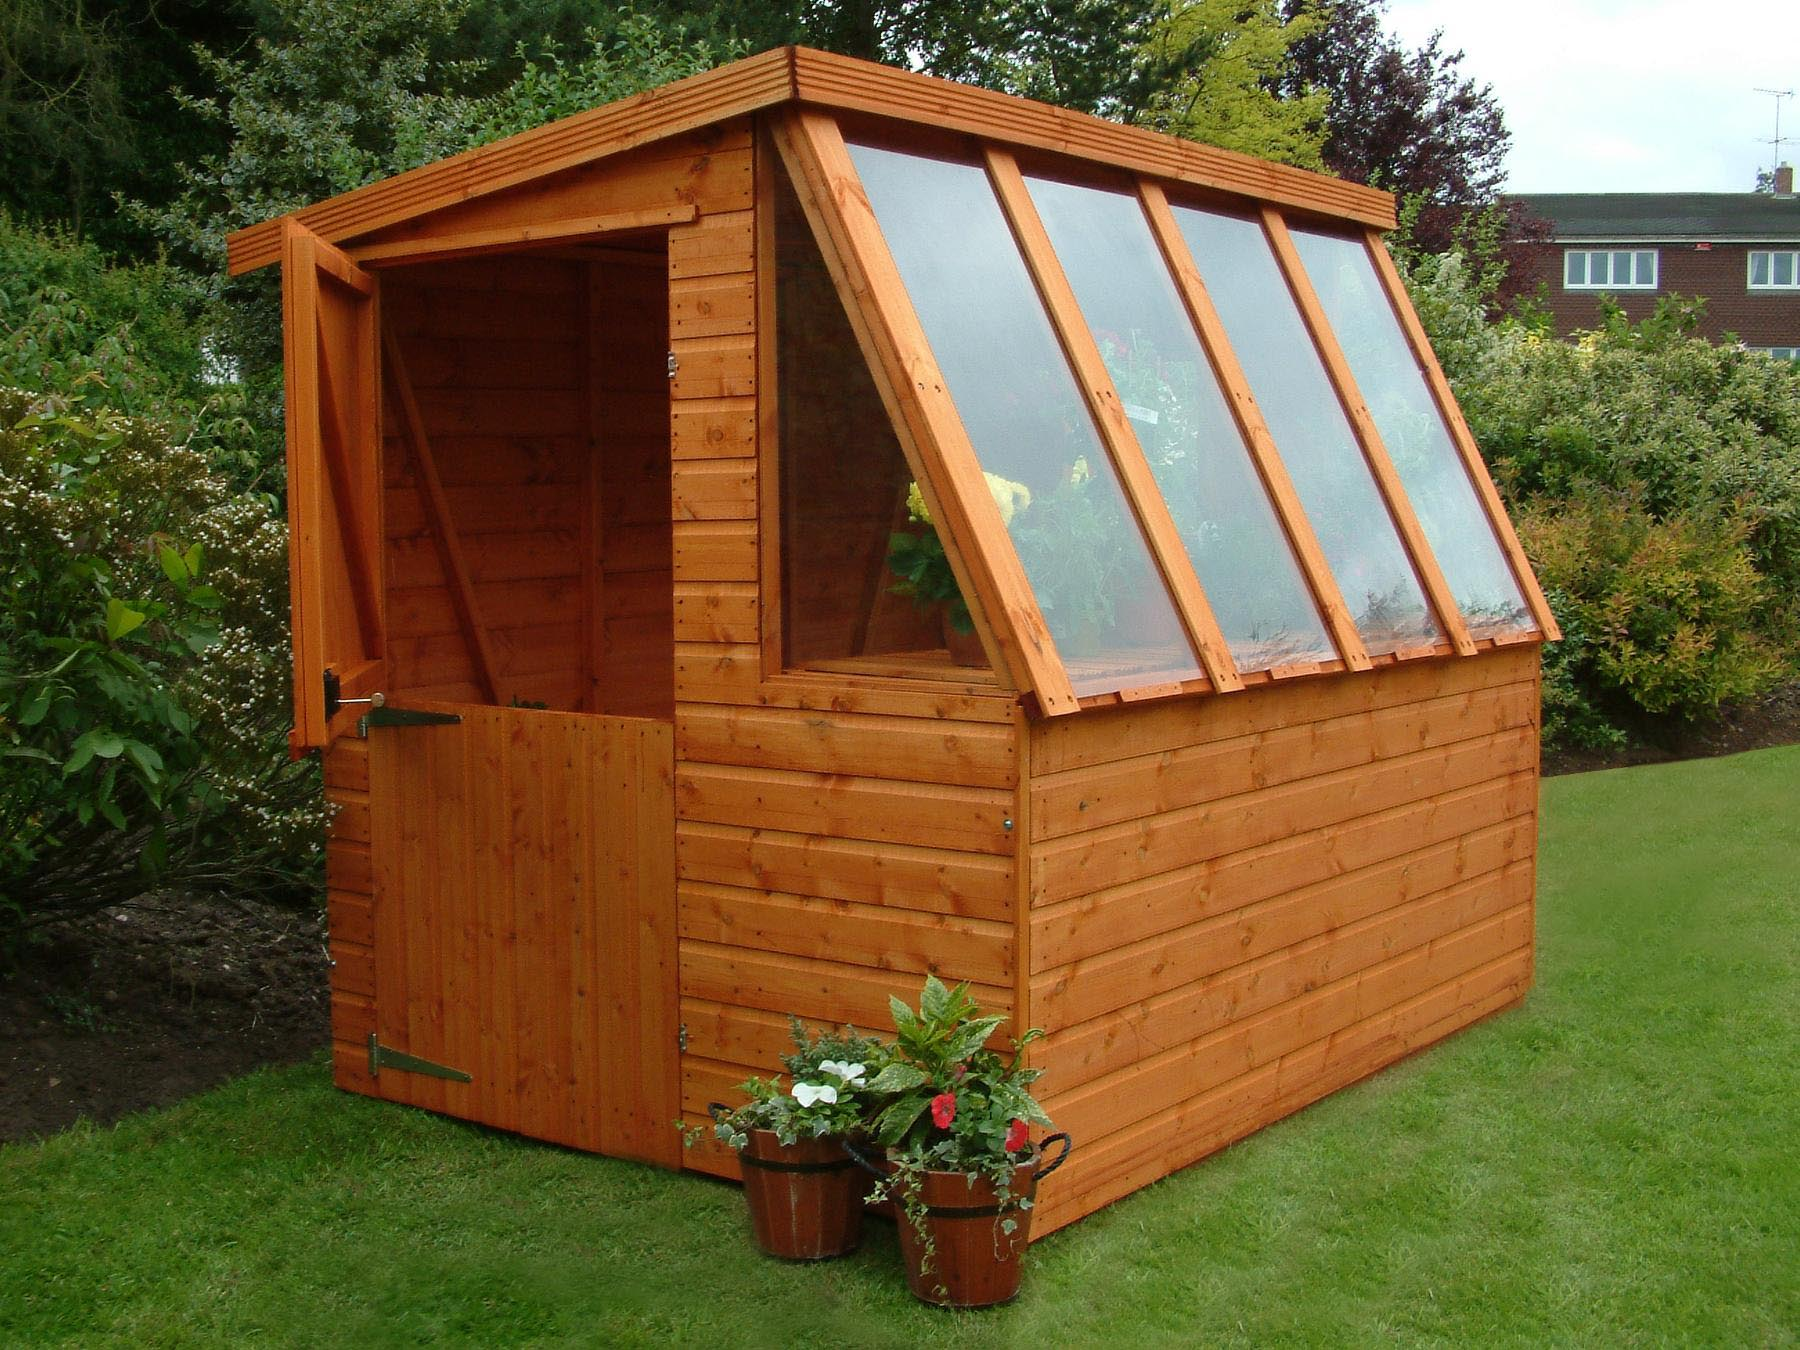 Potting Sheds for Small Gardens